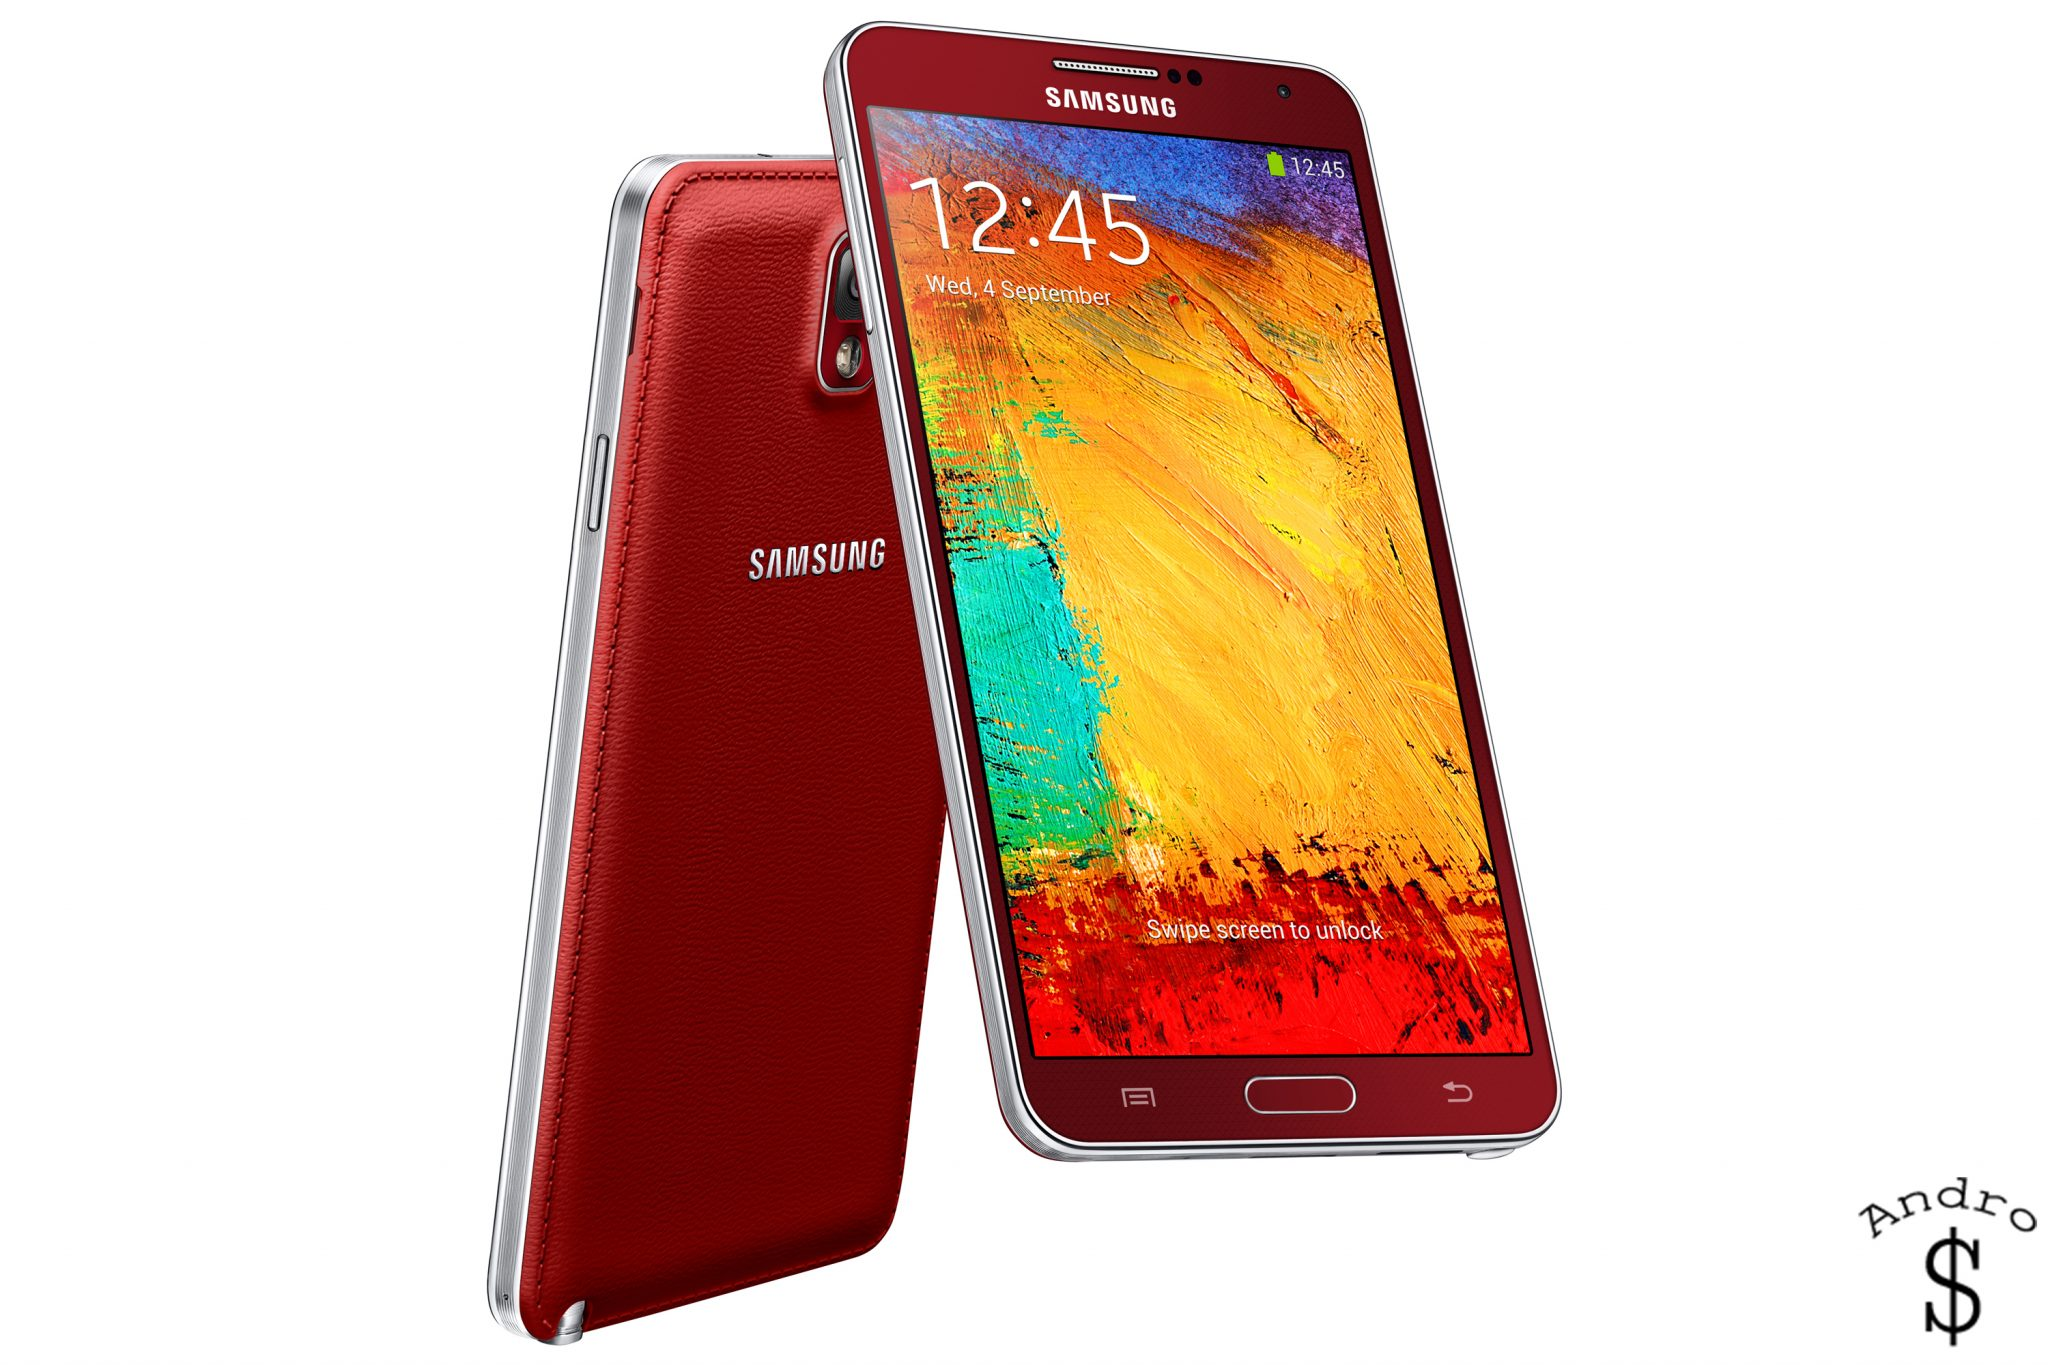 The Red Variant of the Galaxy Note 3